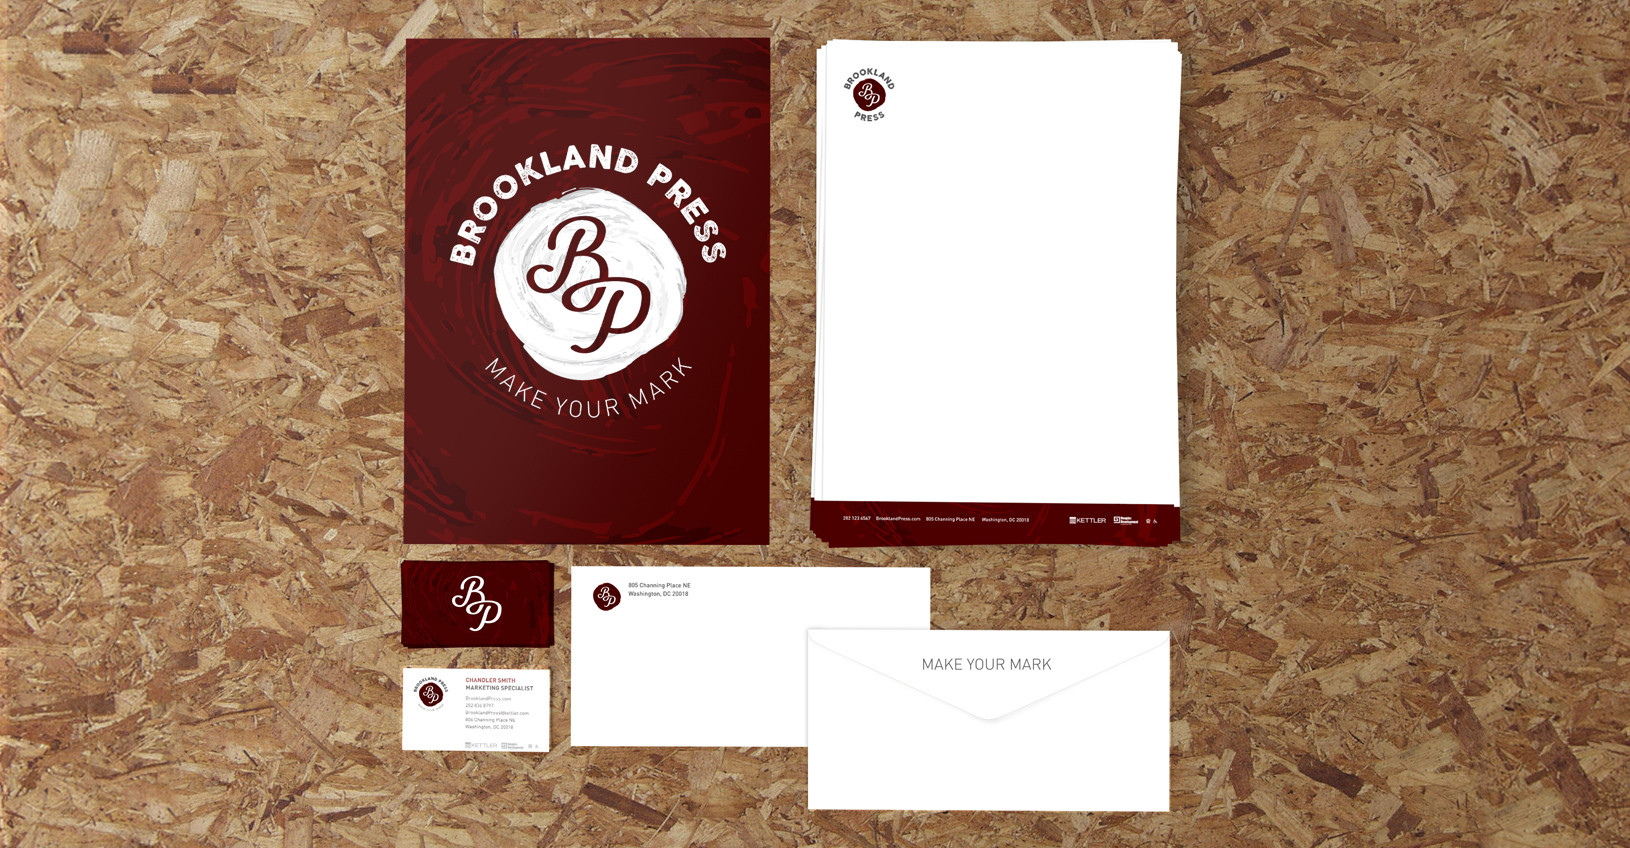 xBP-Project-Images-Stationery-03.jpg